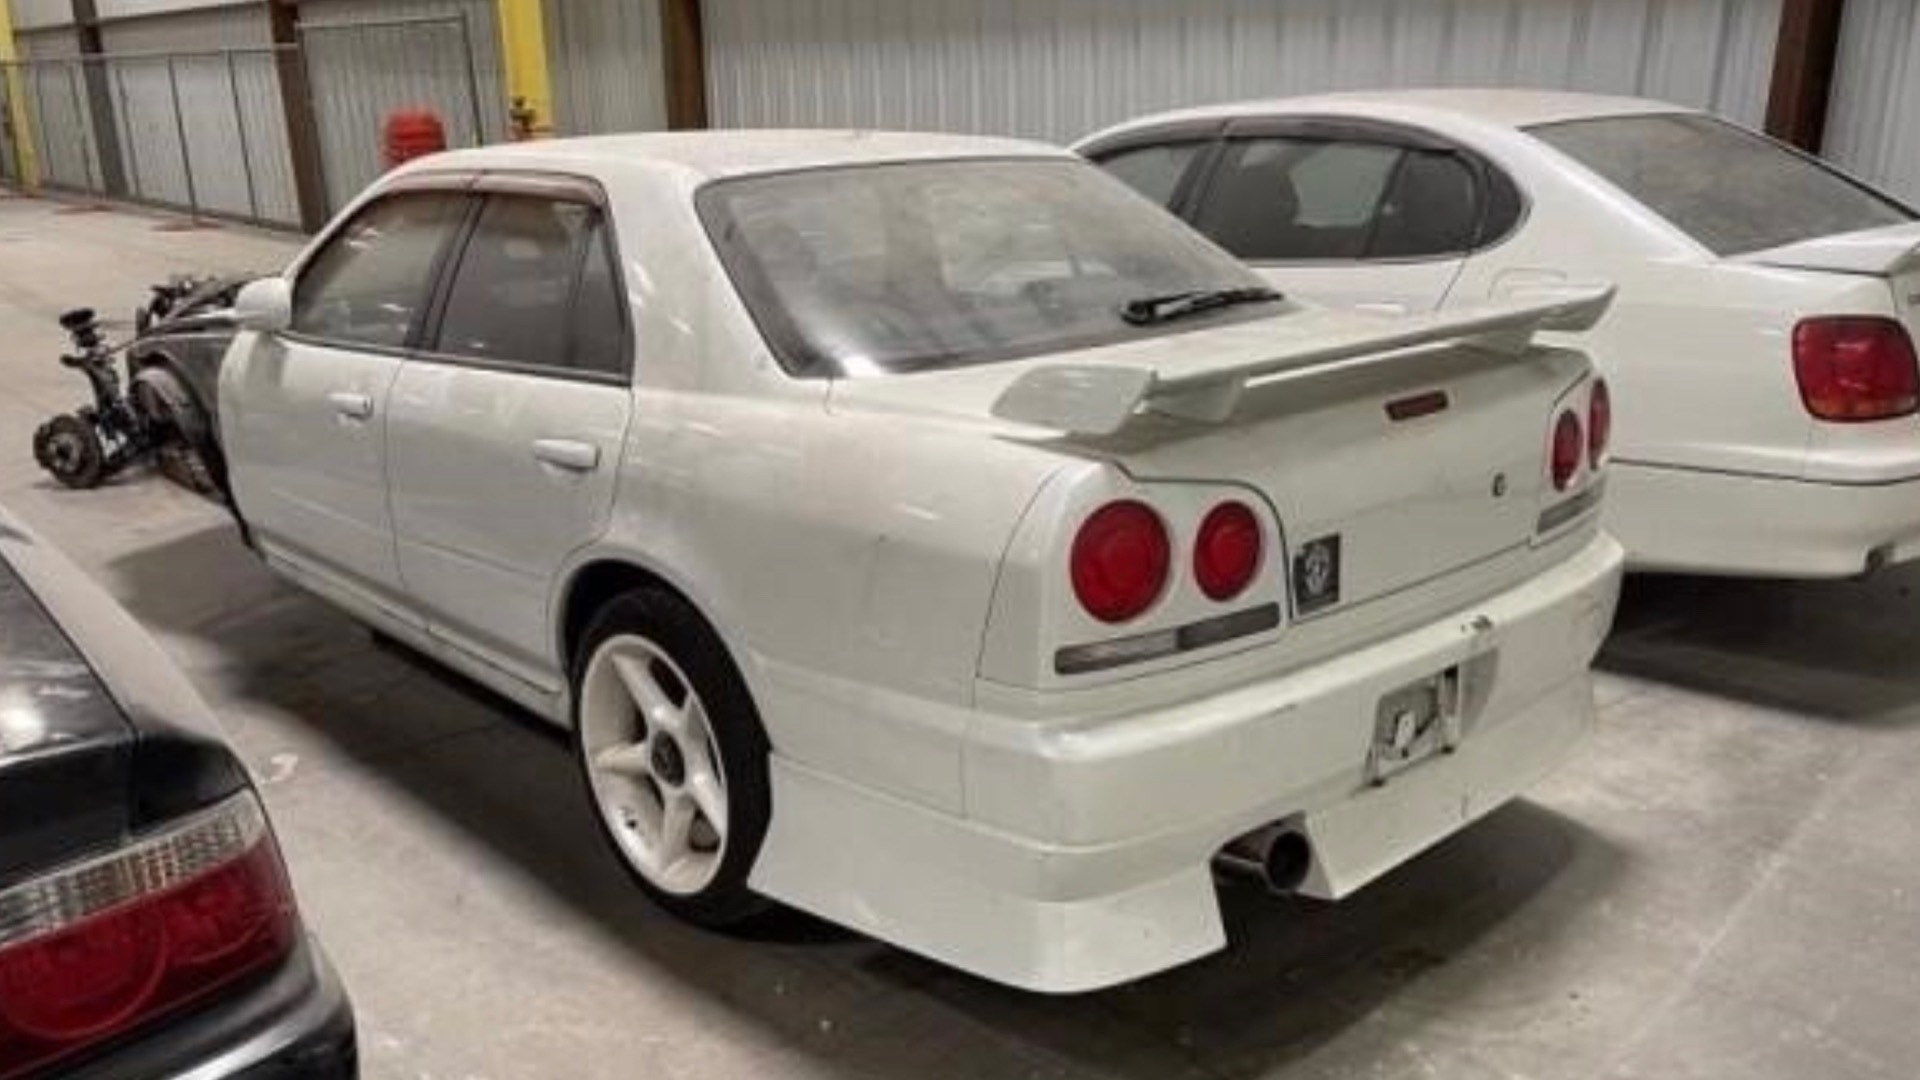 The customs service earned $148,000 from selling nearly two dozen Japanese cars illegally imported into the USA.